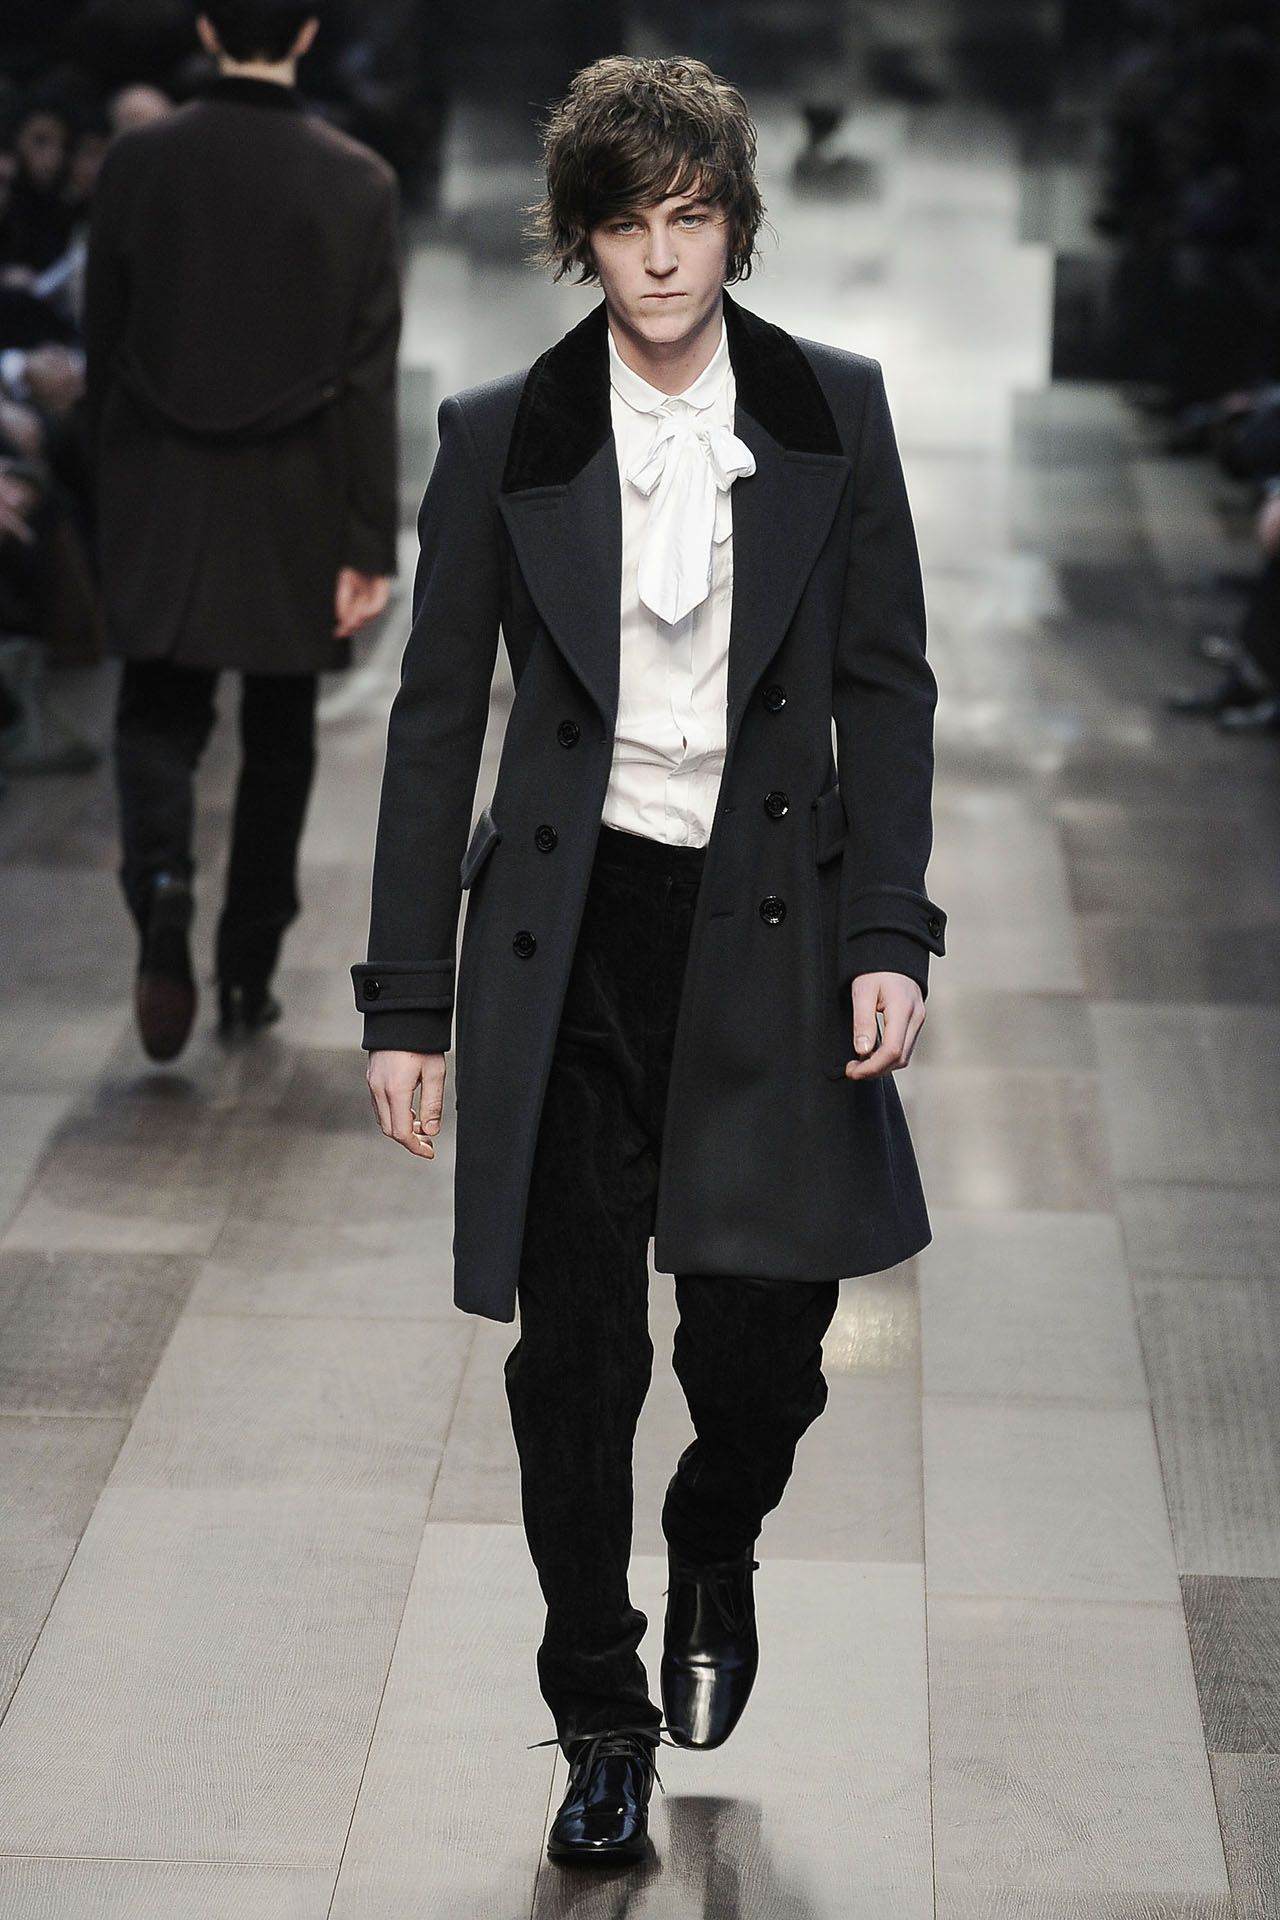 4beb3f0093f6 Burberry Prorsum Autumn/Winter 2009 Menswear | Men's fashion ...